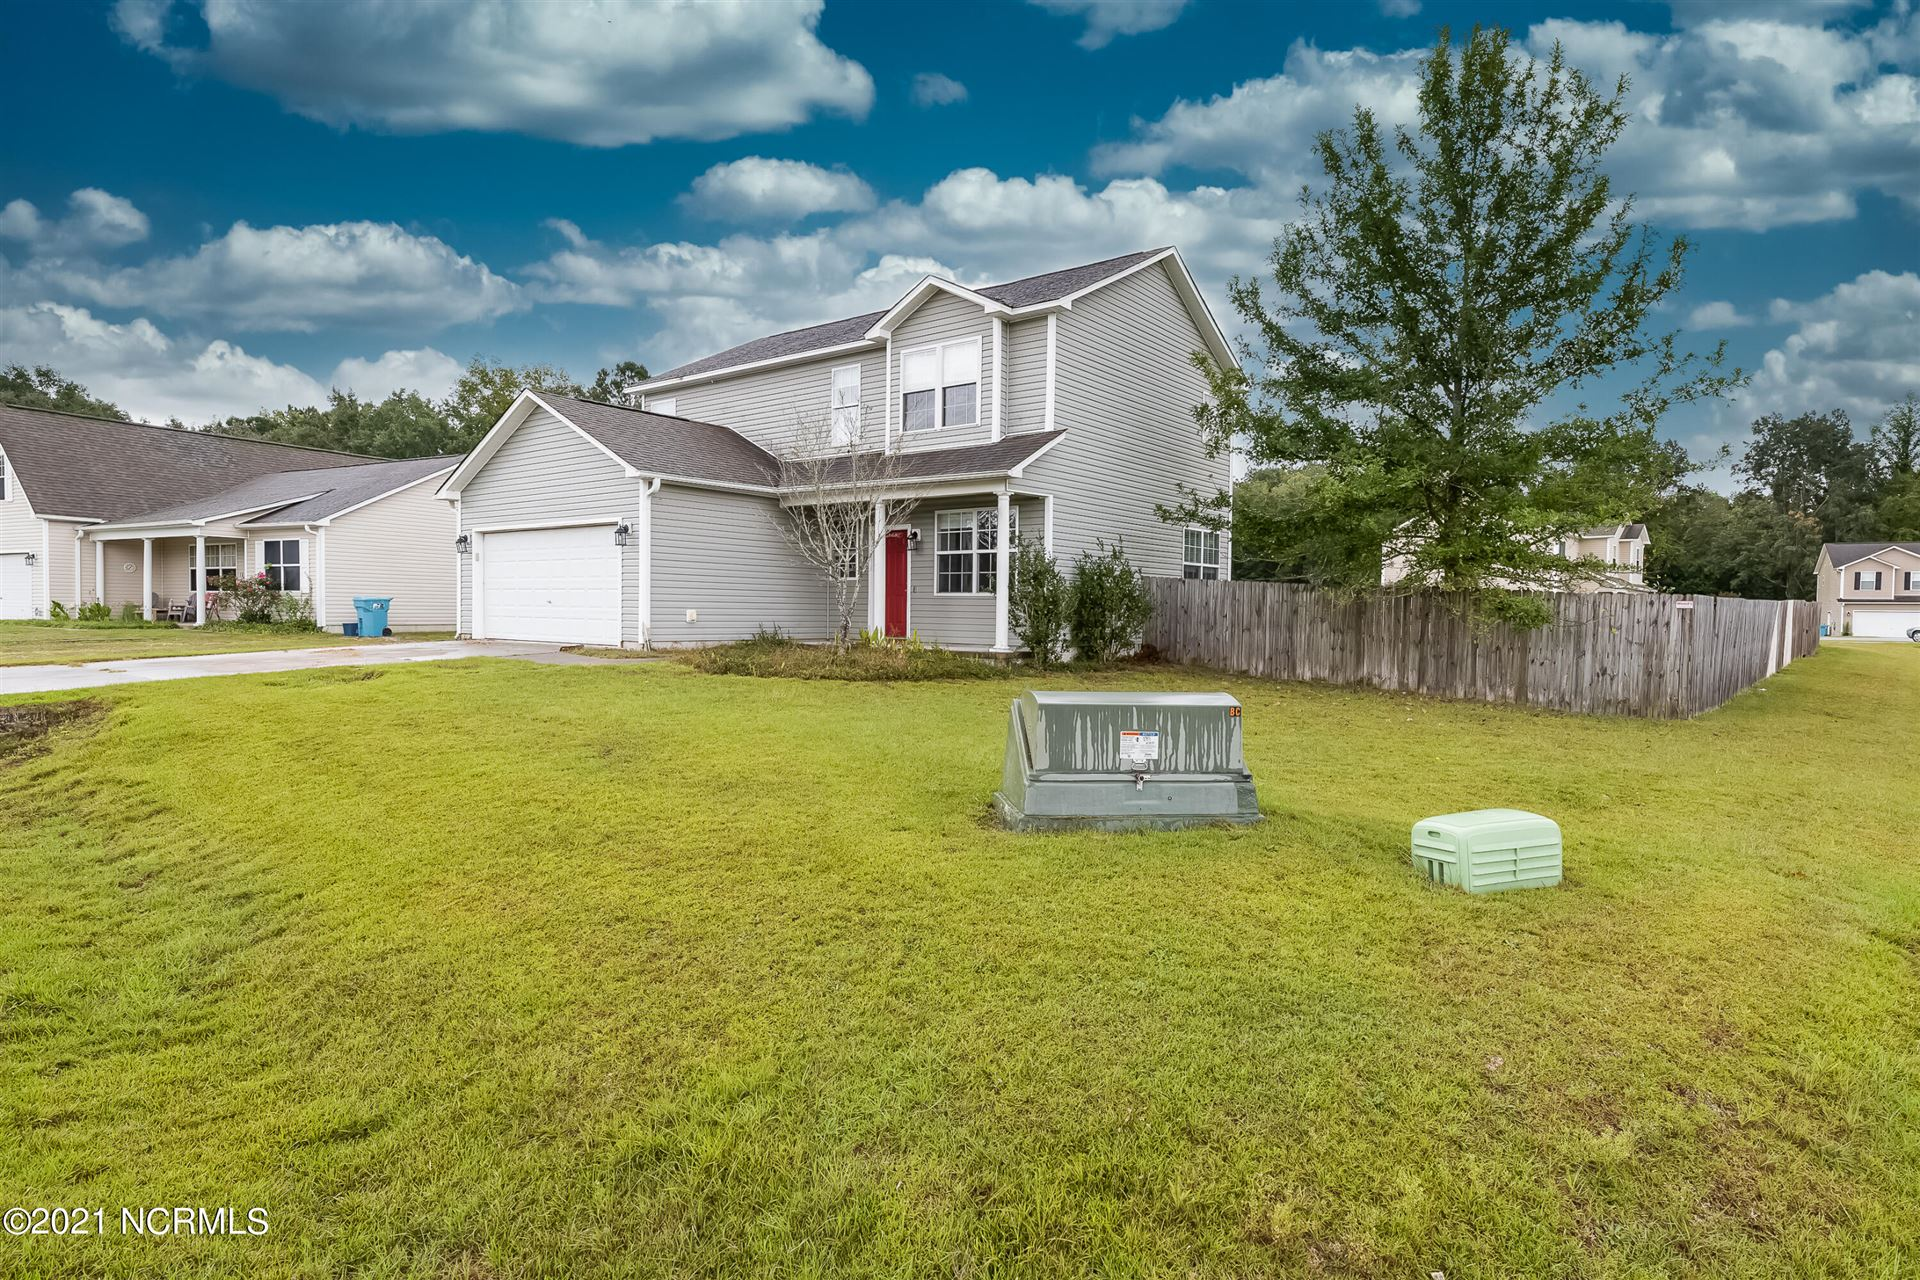 Photo of 118 Briar Hollow Drive, Jacksonville, NC 28540 (MLS # 100295438)